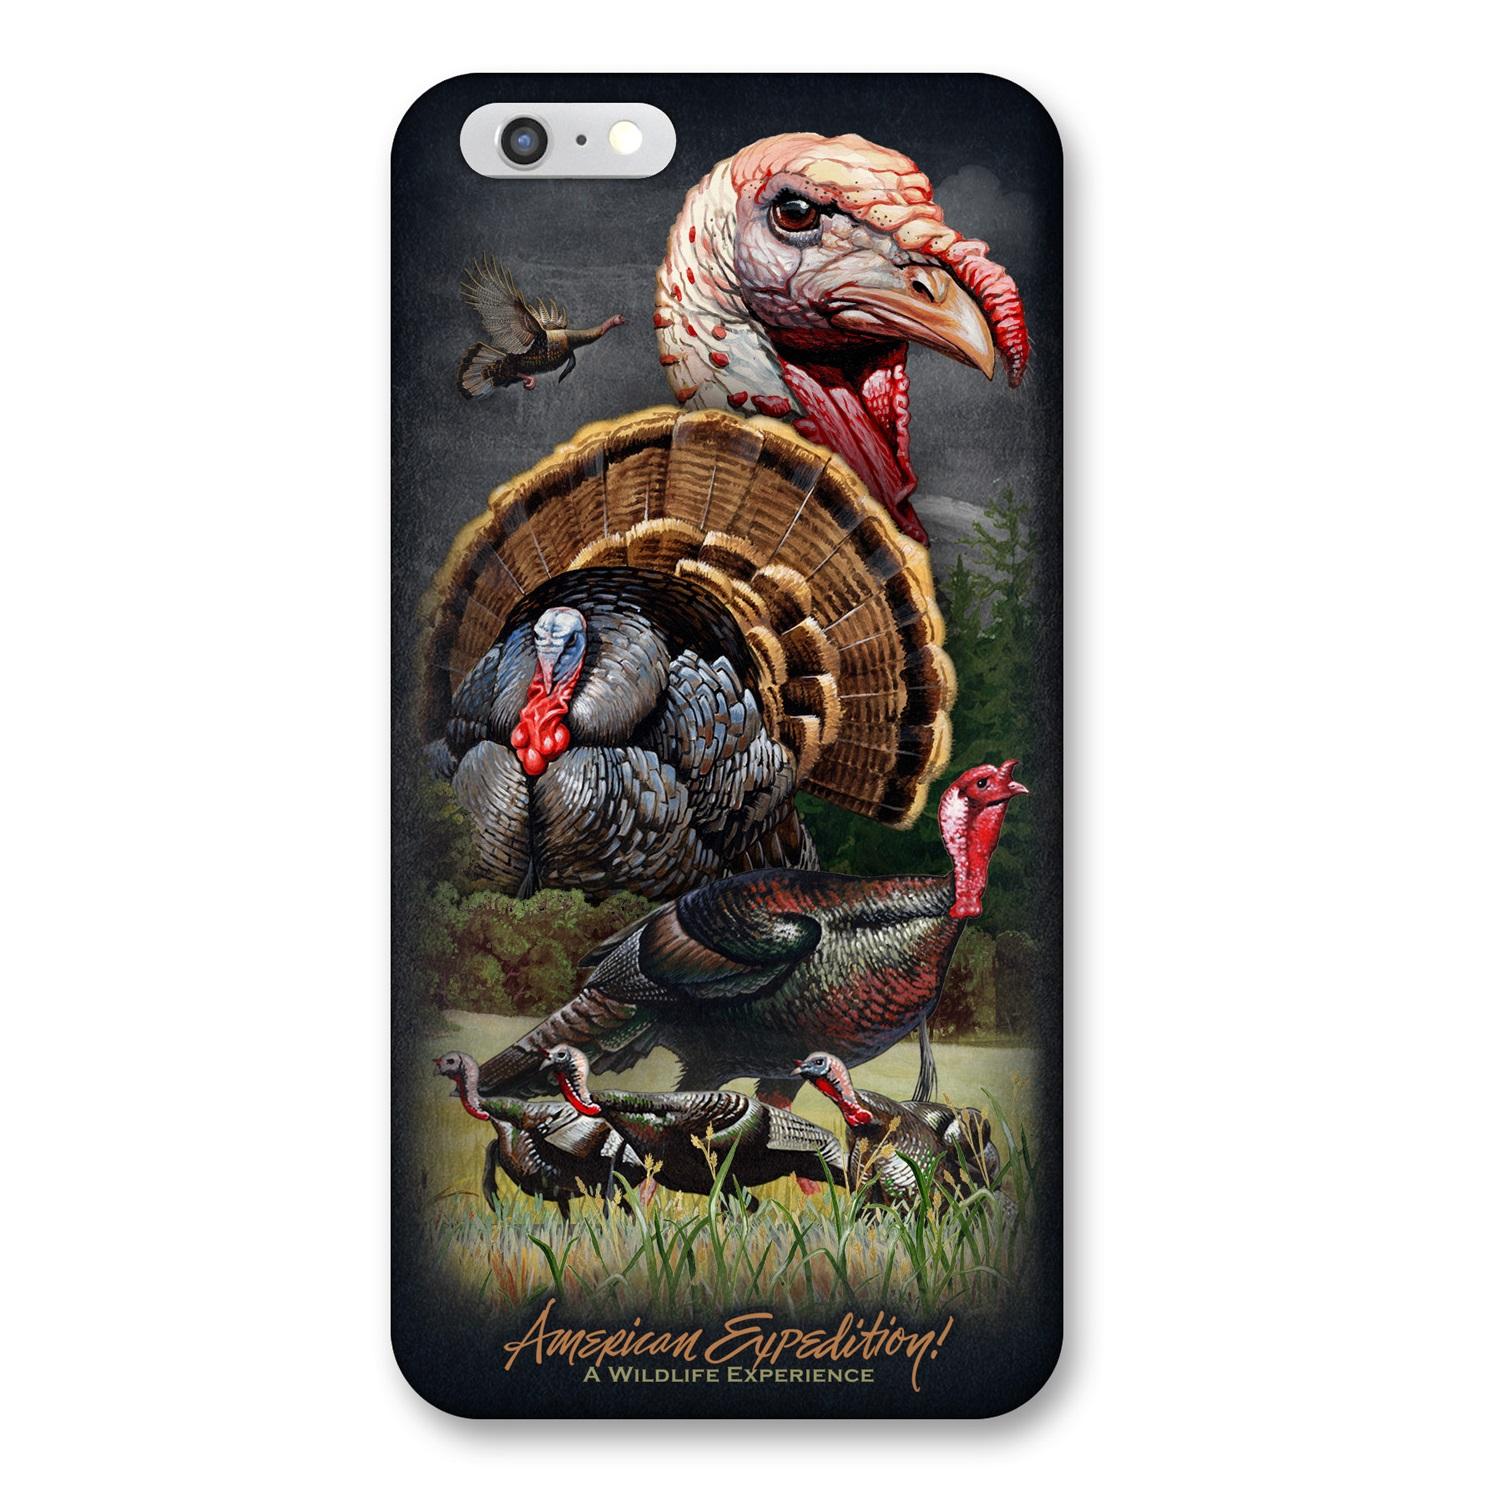 American Expedition iPhone 6 Cover - Wild Turkey Collage